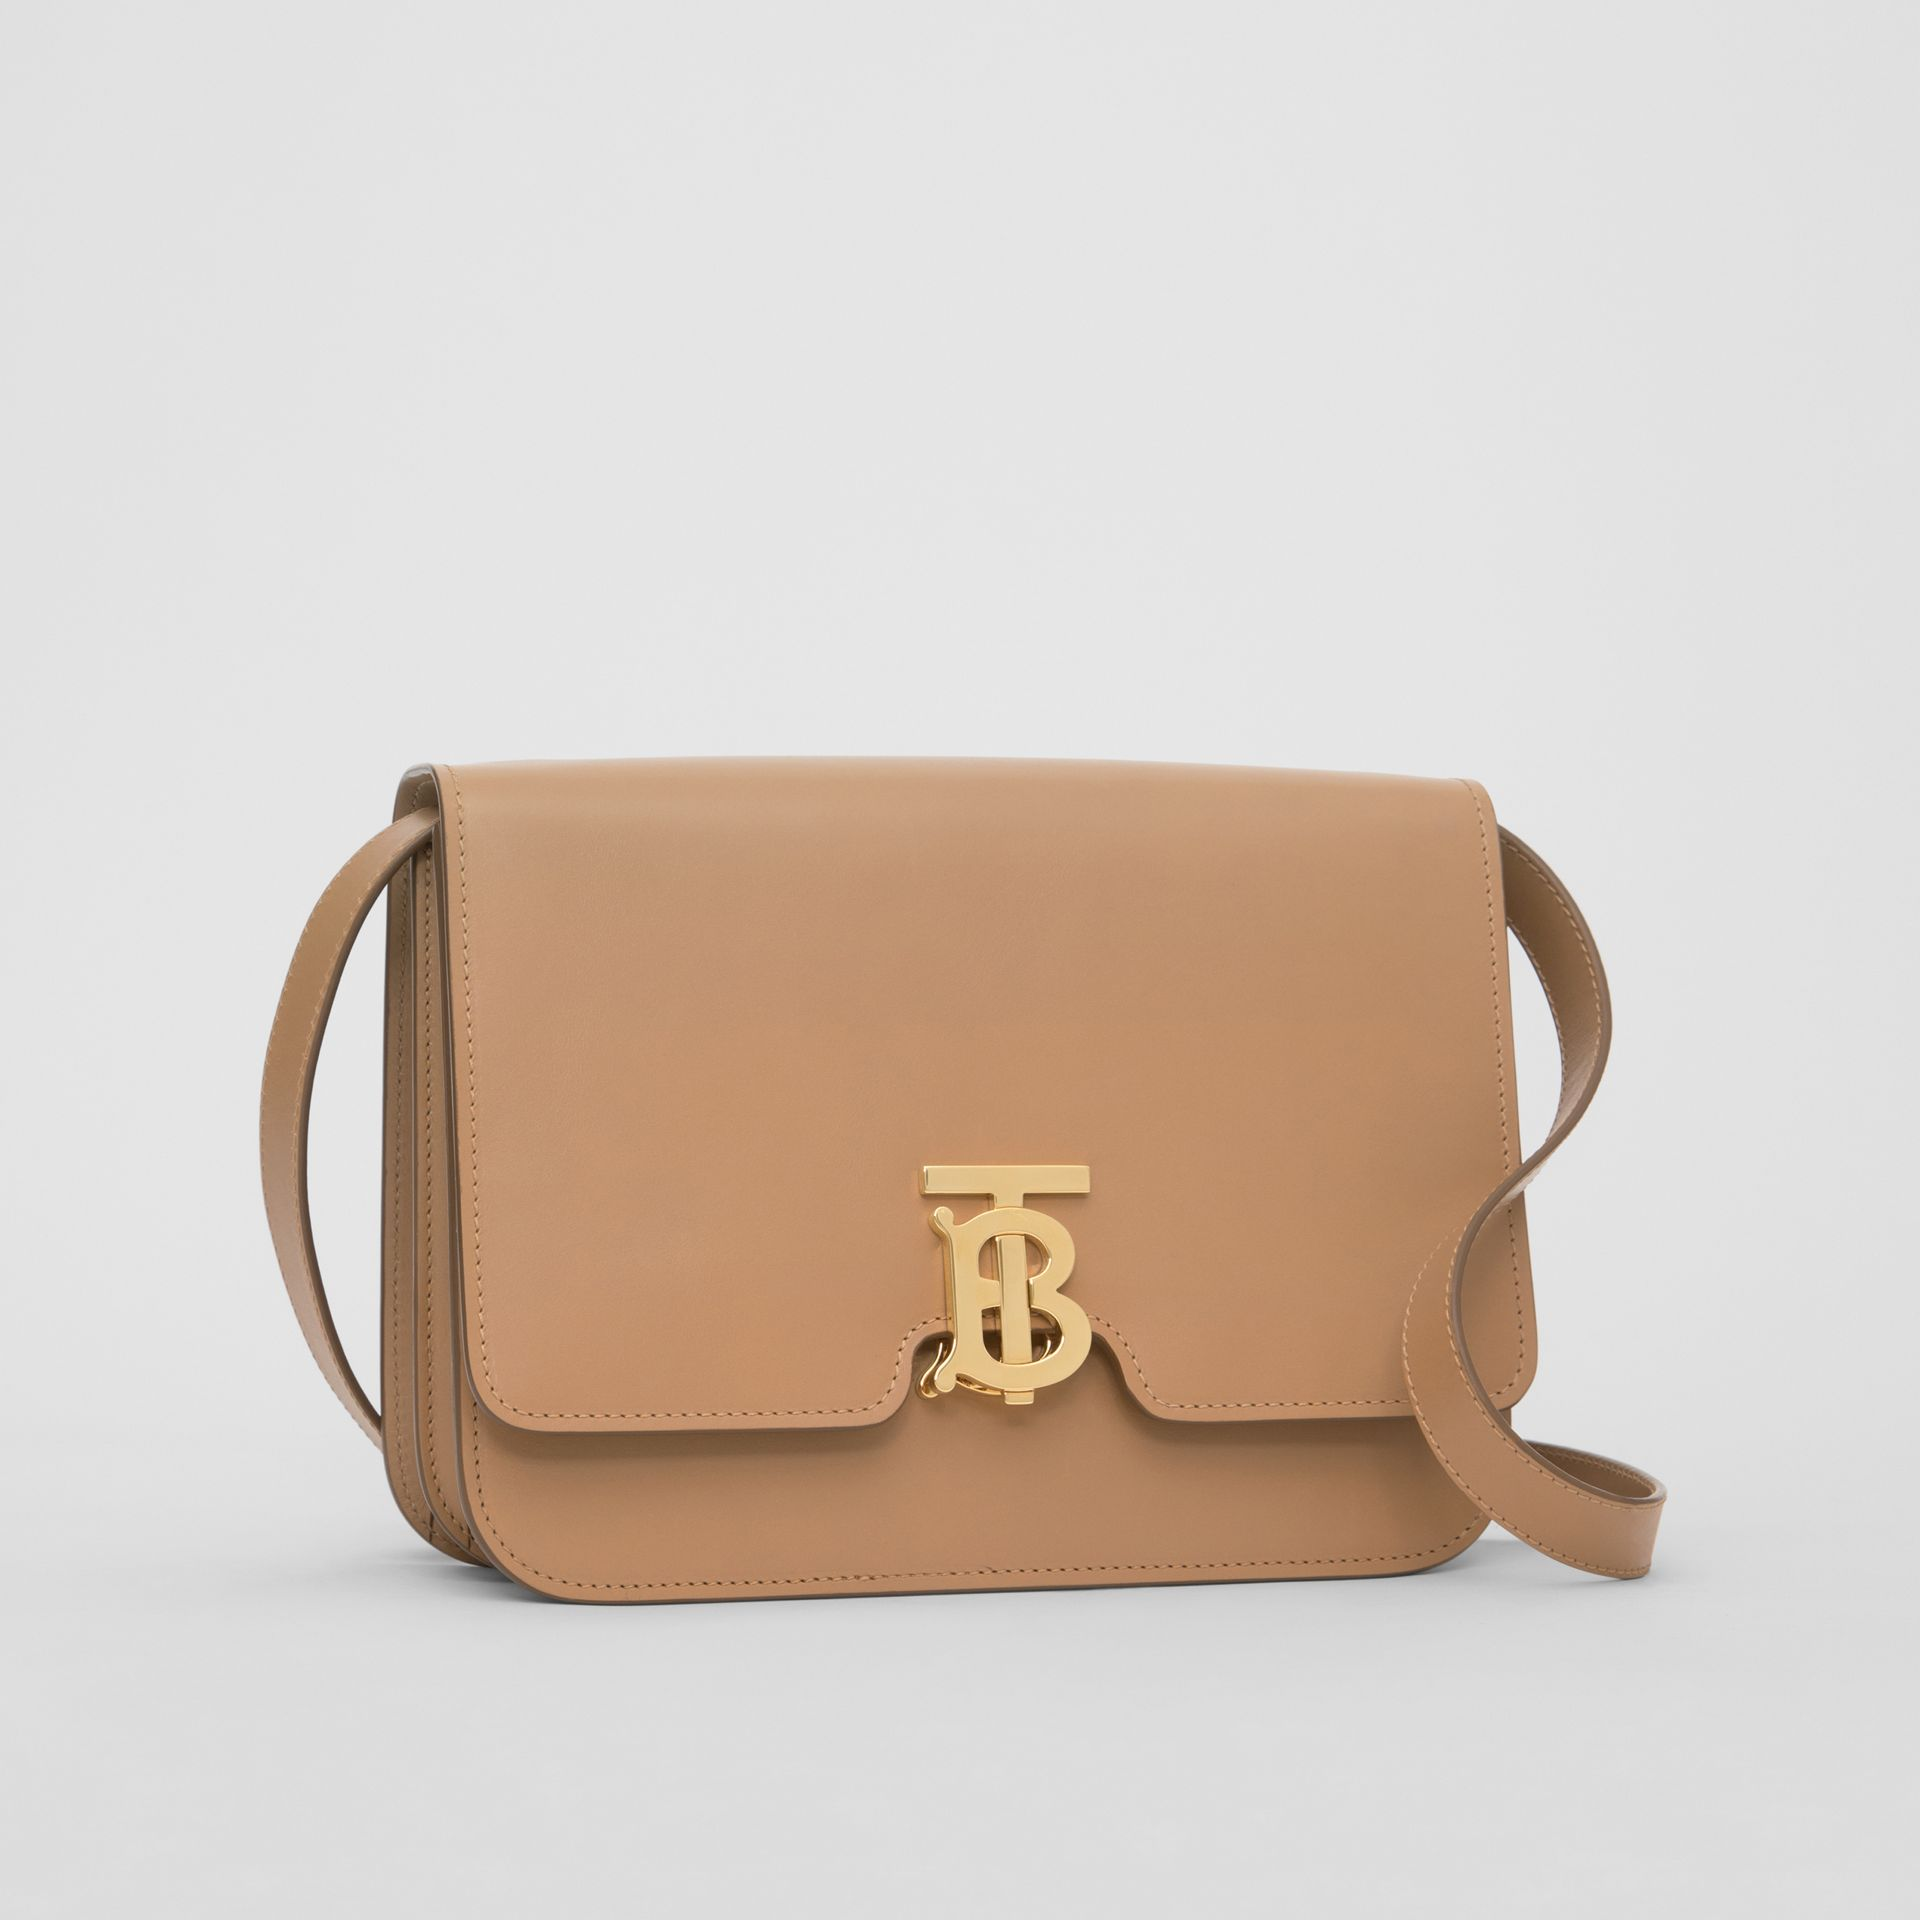 Medium Leather TB Bag in Light Camel - Women | Burberry - gallery image 3